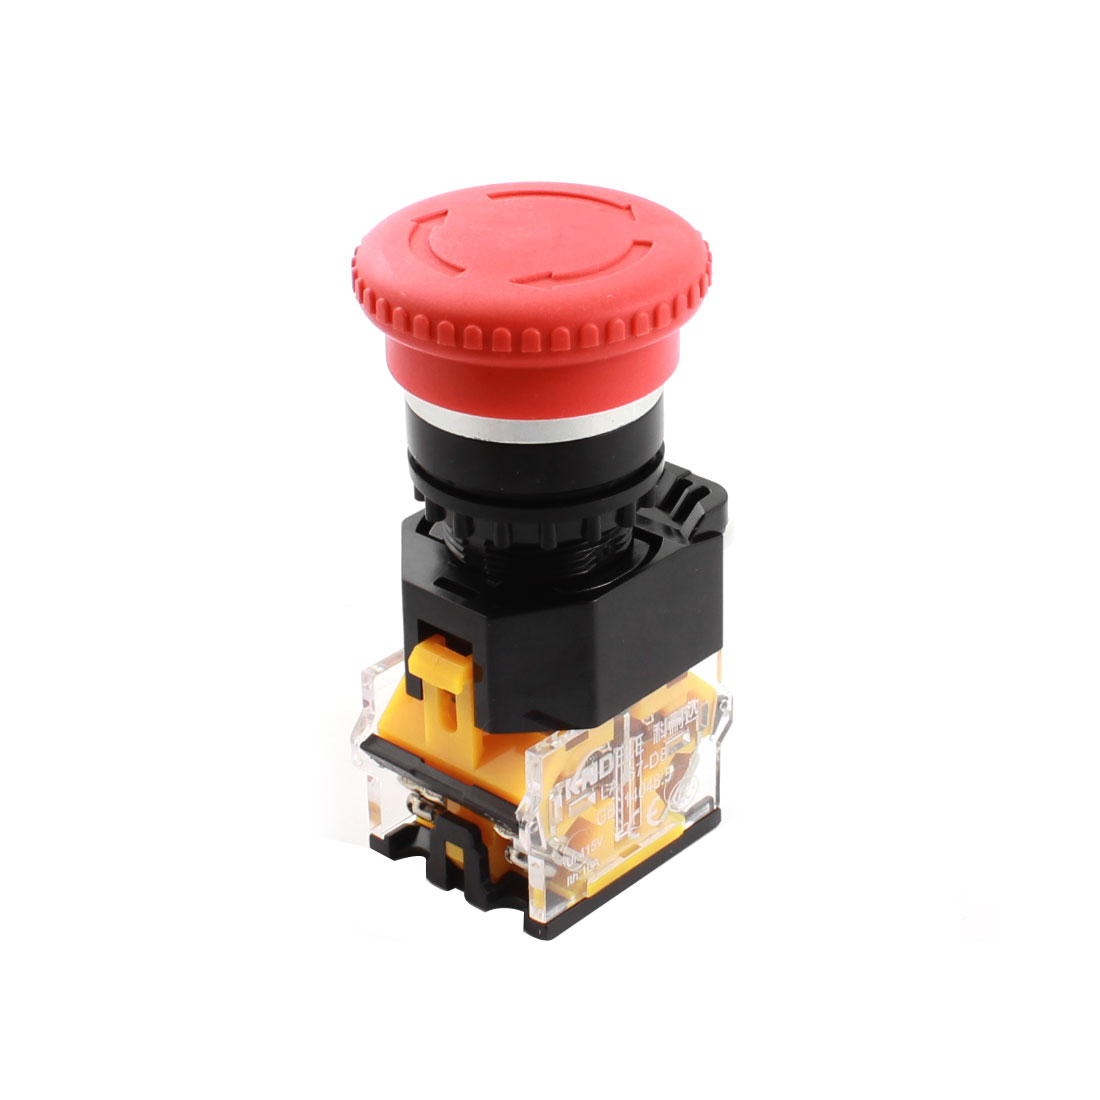 AC415V 10A 1 N/O N/C Red Rotary Locking Mushroom Head Ignition Push Button Switch